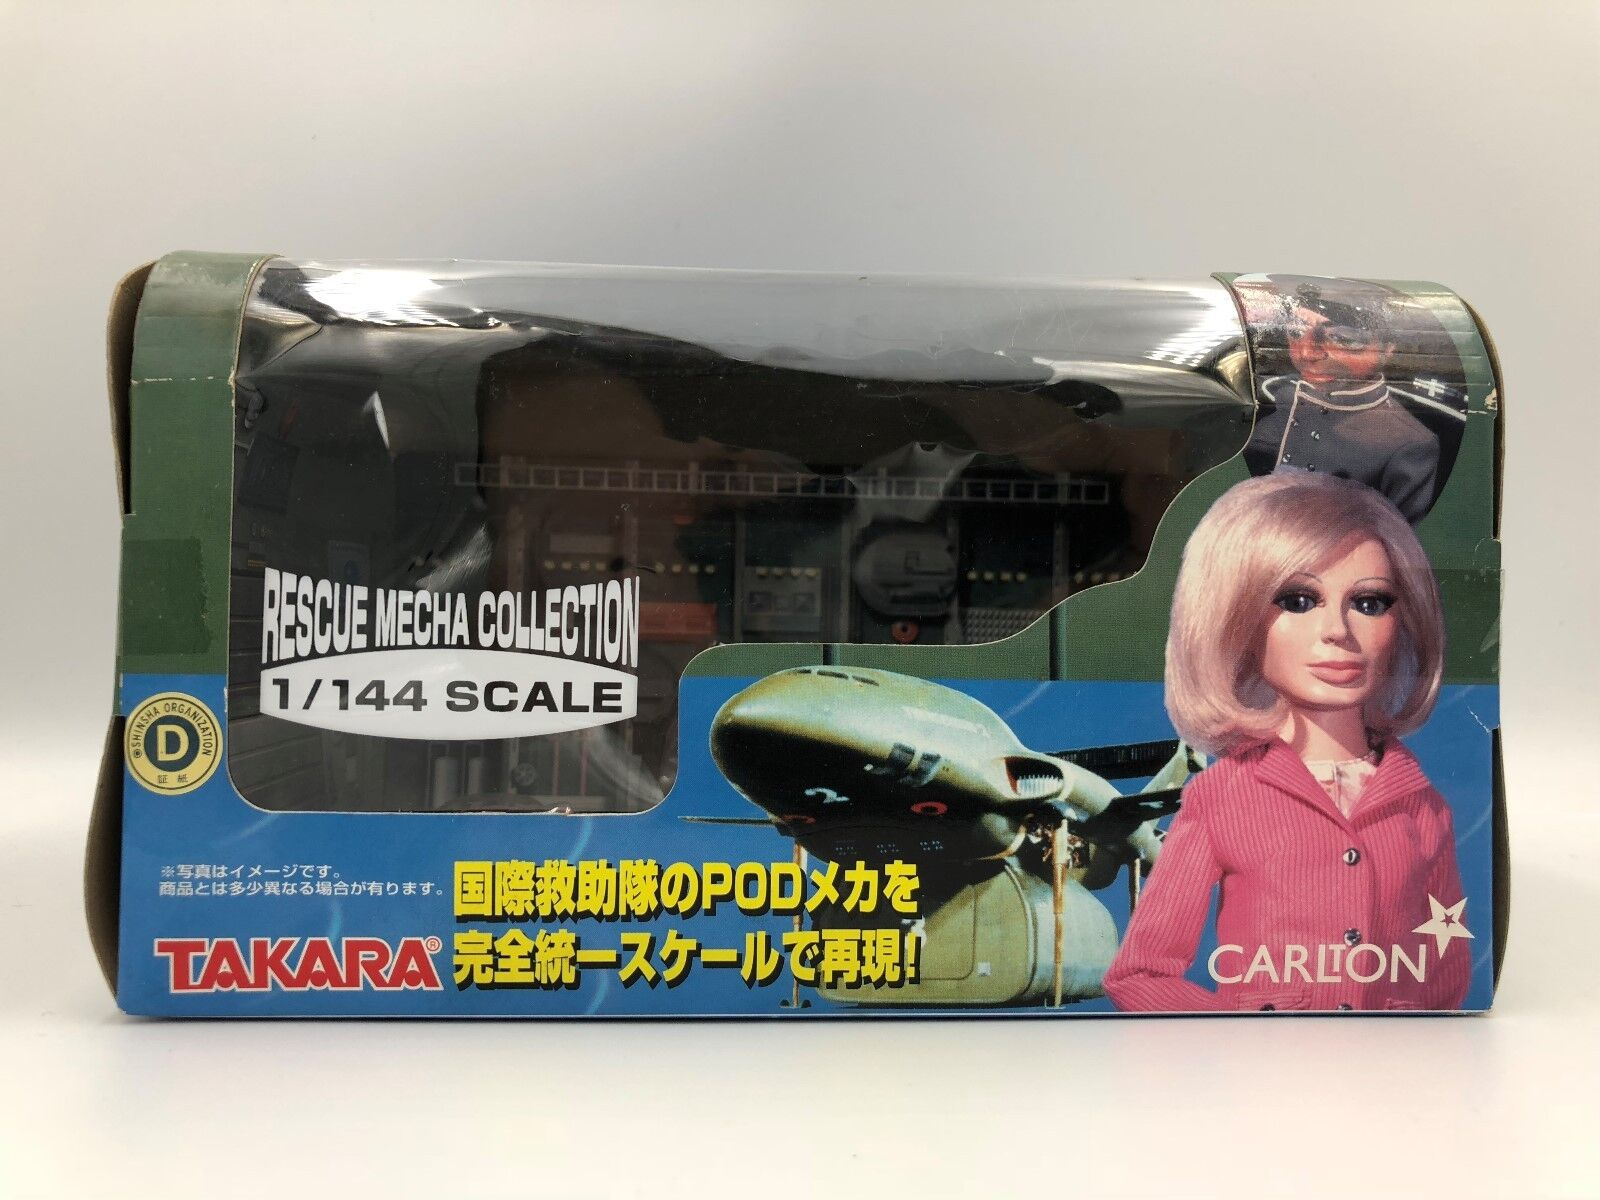 TAKARA carlton Classic thunderbird Rescue mecha collection POD1 1/144 Scale